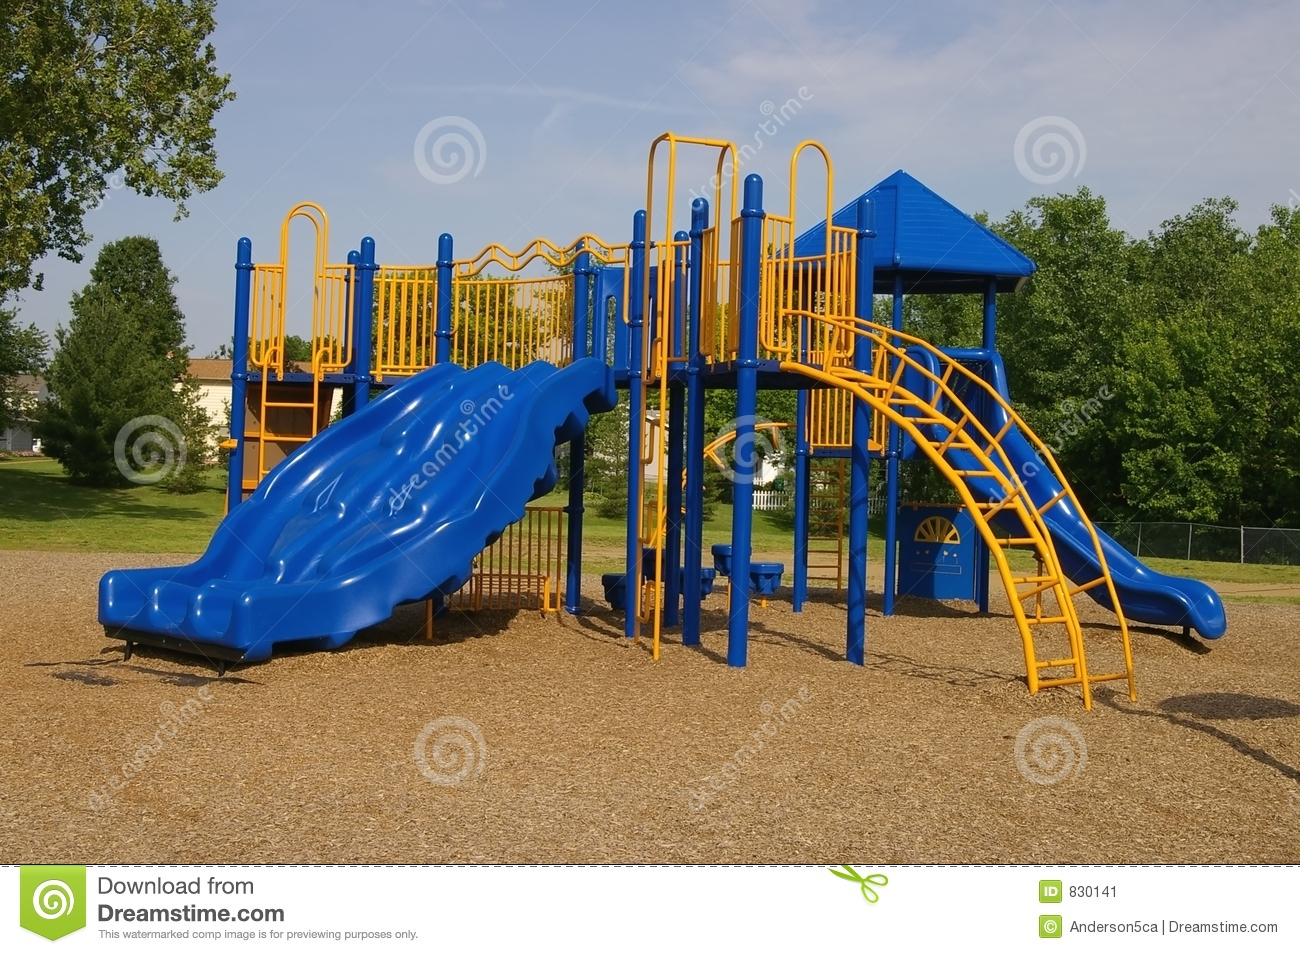 Playground Equipment Stock Image - Image: 830141